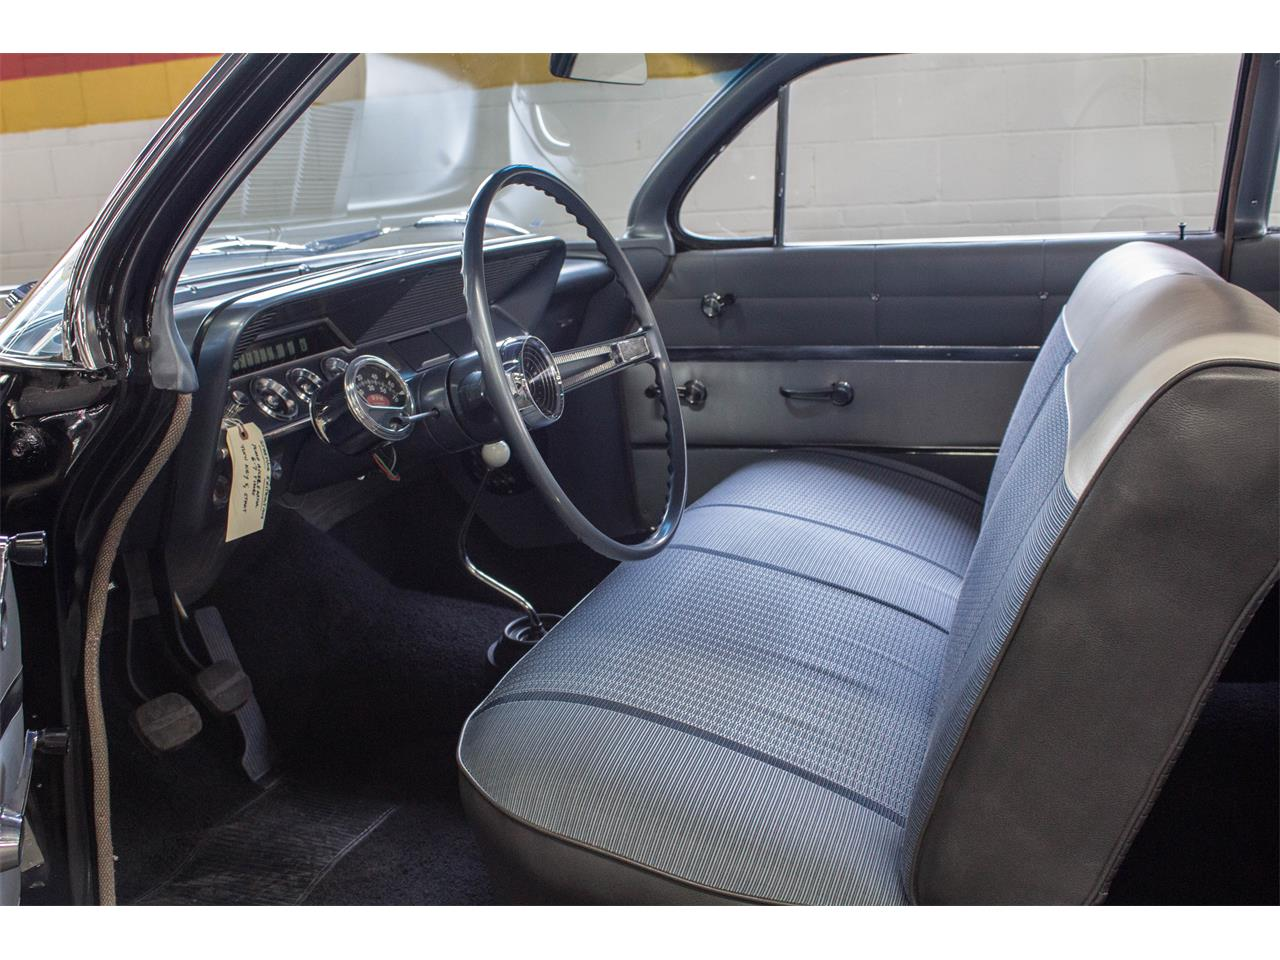 Large Picture of '61 Chevrolet Bel Air located in Montréal Quebec - $72,500.00 Offered by John Scotti Classic Cars - M35A